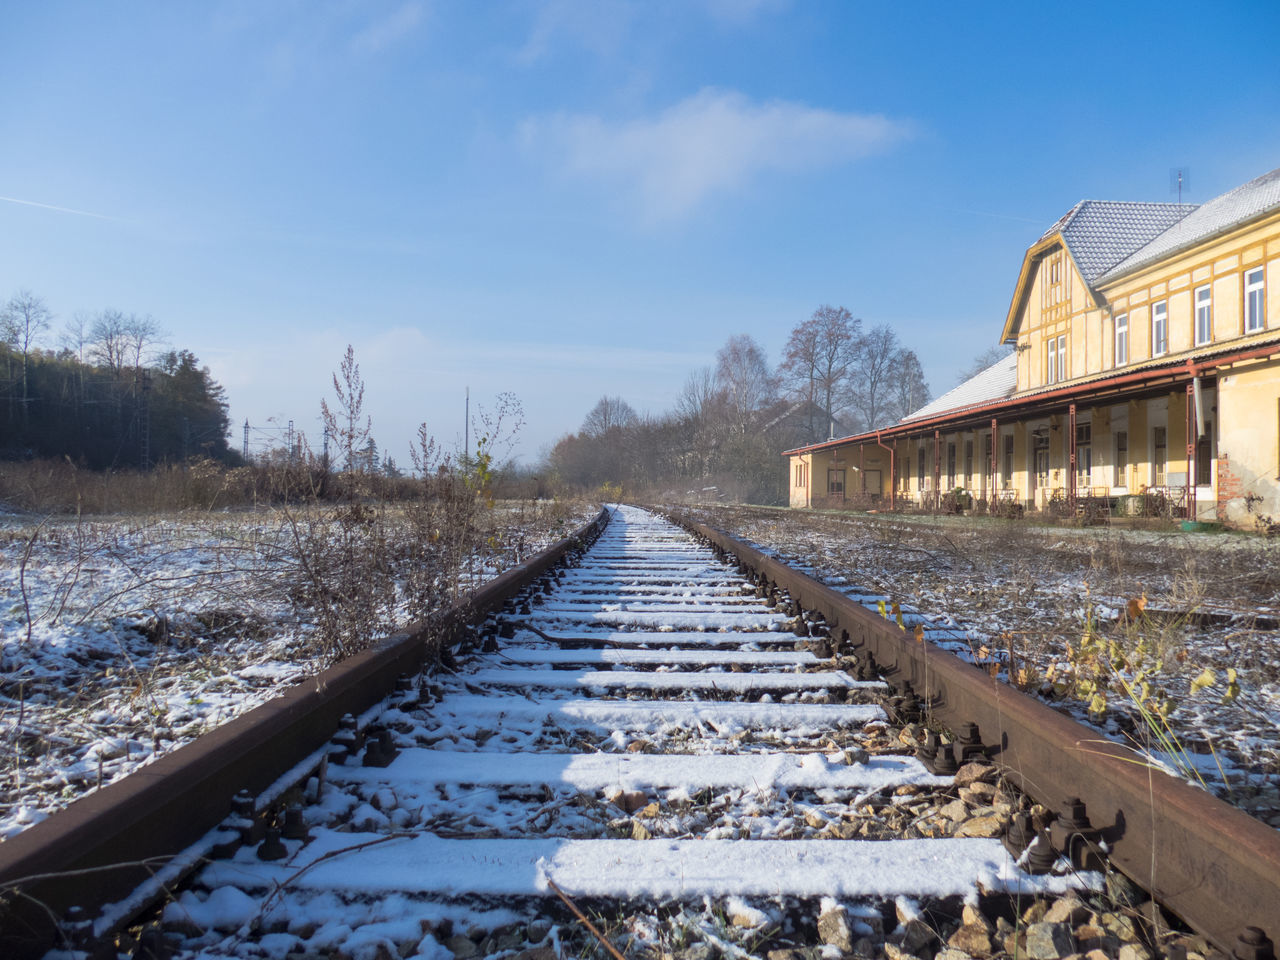 railroad track, rail transportation, transportation, the way forward, sky, no people, day, outdoors, railroad tie, nature, railroad, tree, built structure